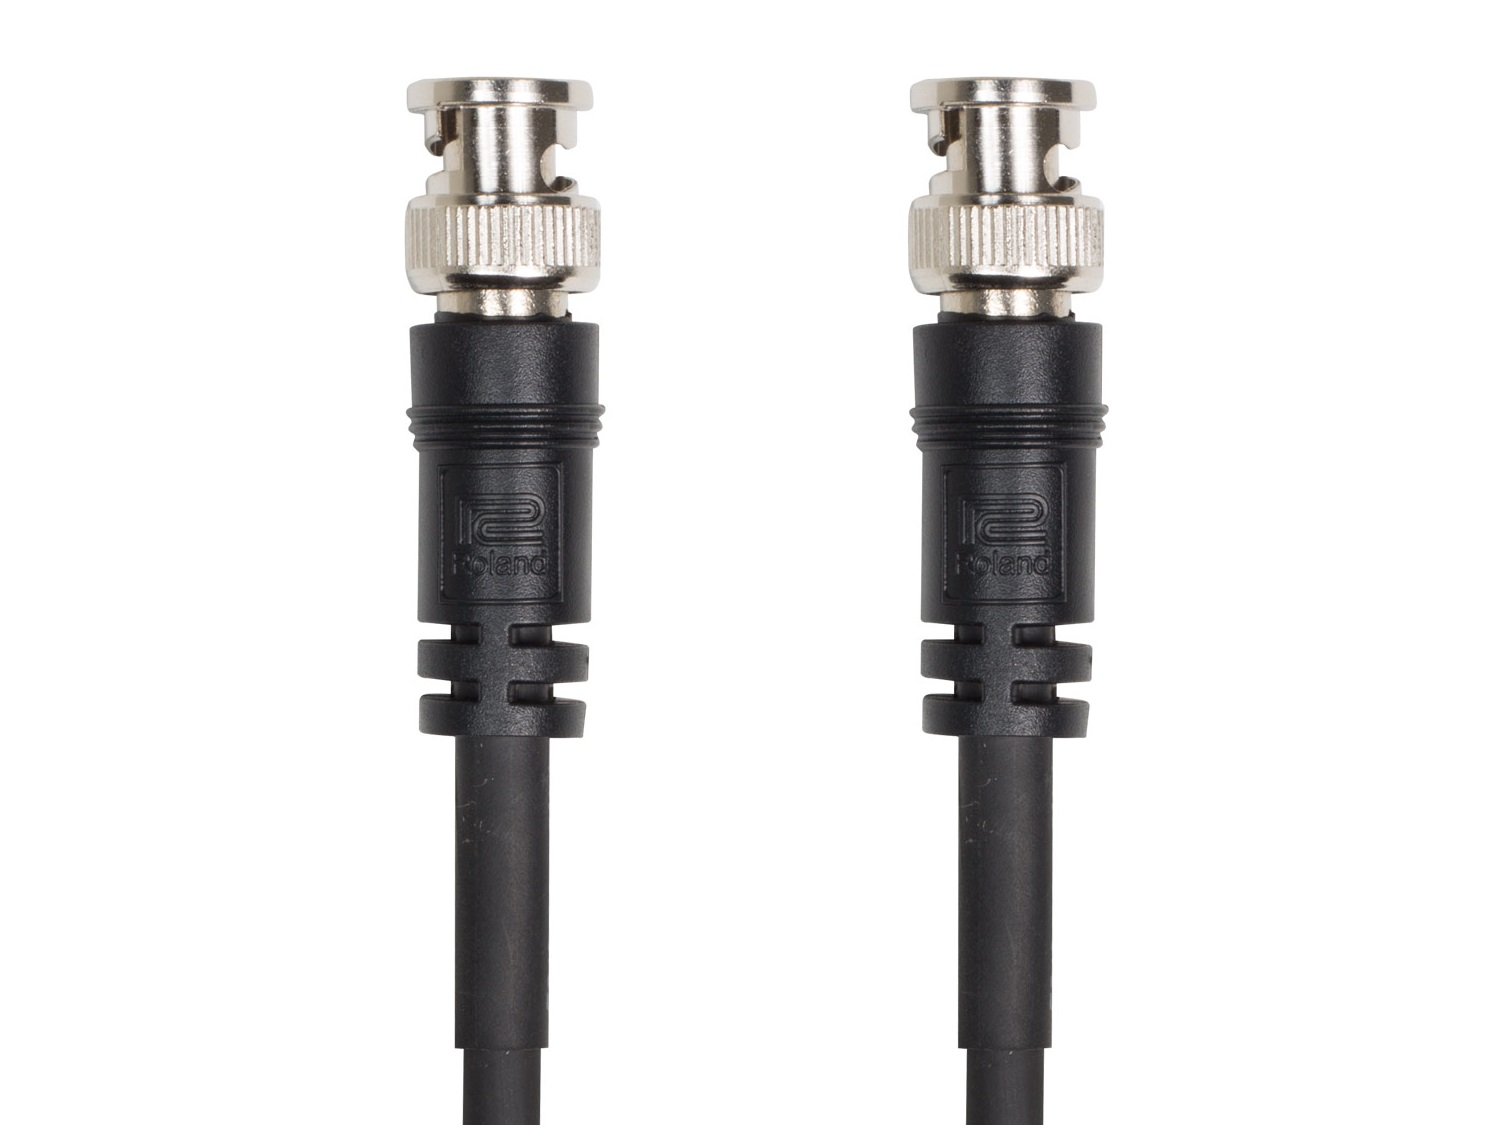 RCC-200-SDI 60m/200ft SDI Cable (Black Series) by Roland